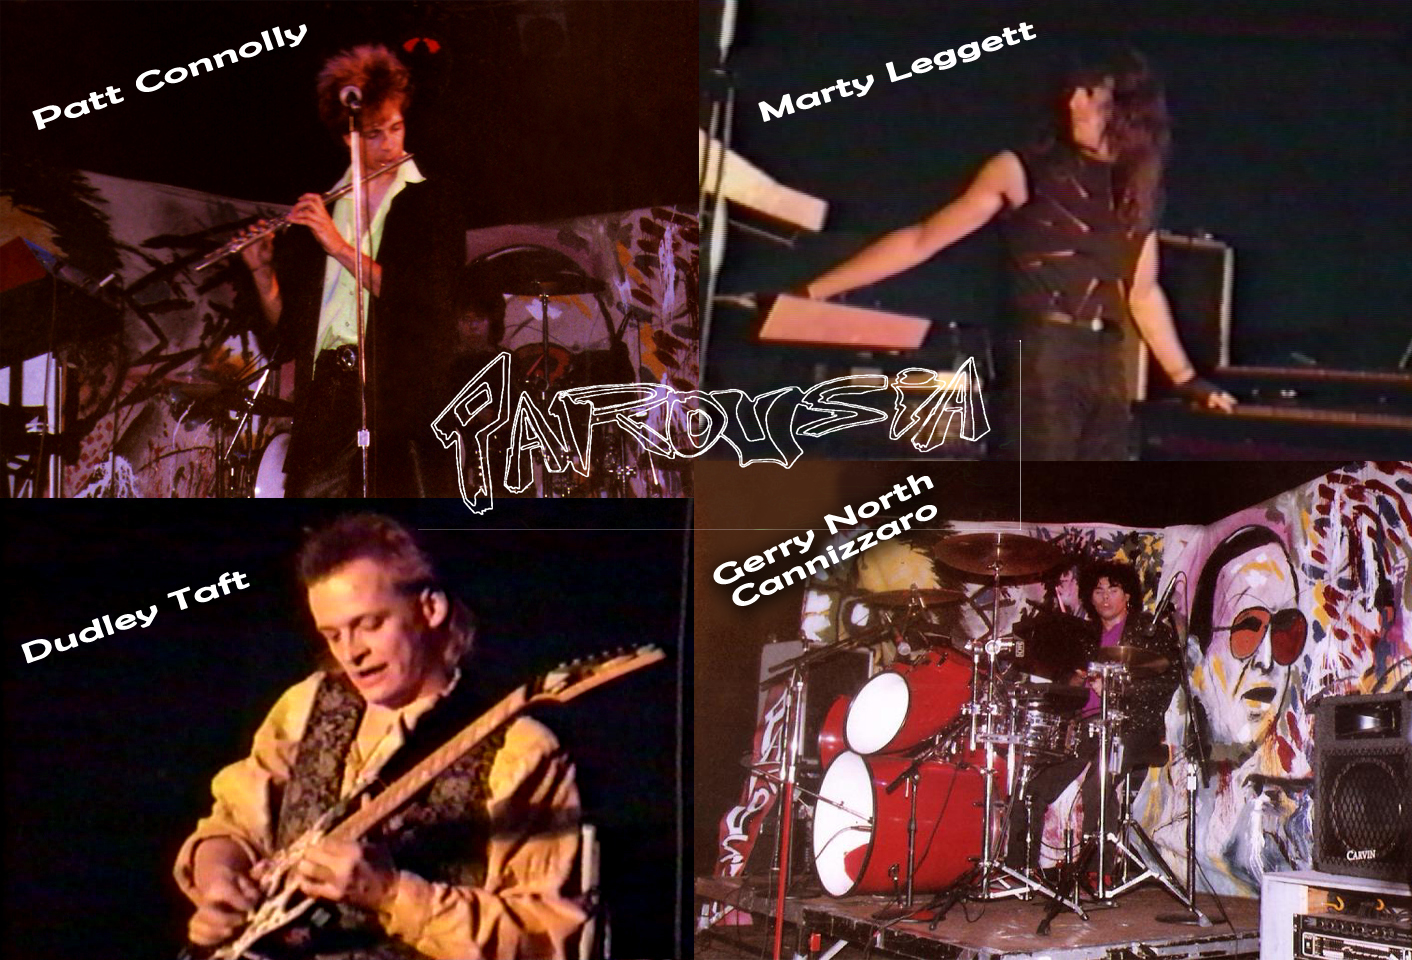 Parousia 1990: Patt Connolly, Marty Leggett, Dudley Taft and Gerry North Cannizzaro